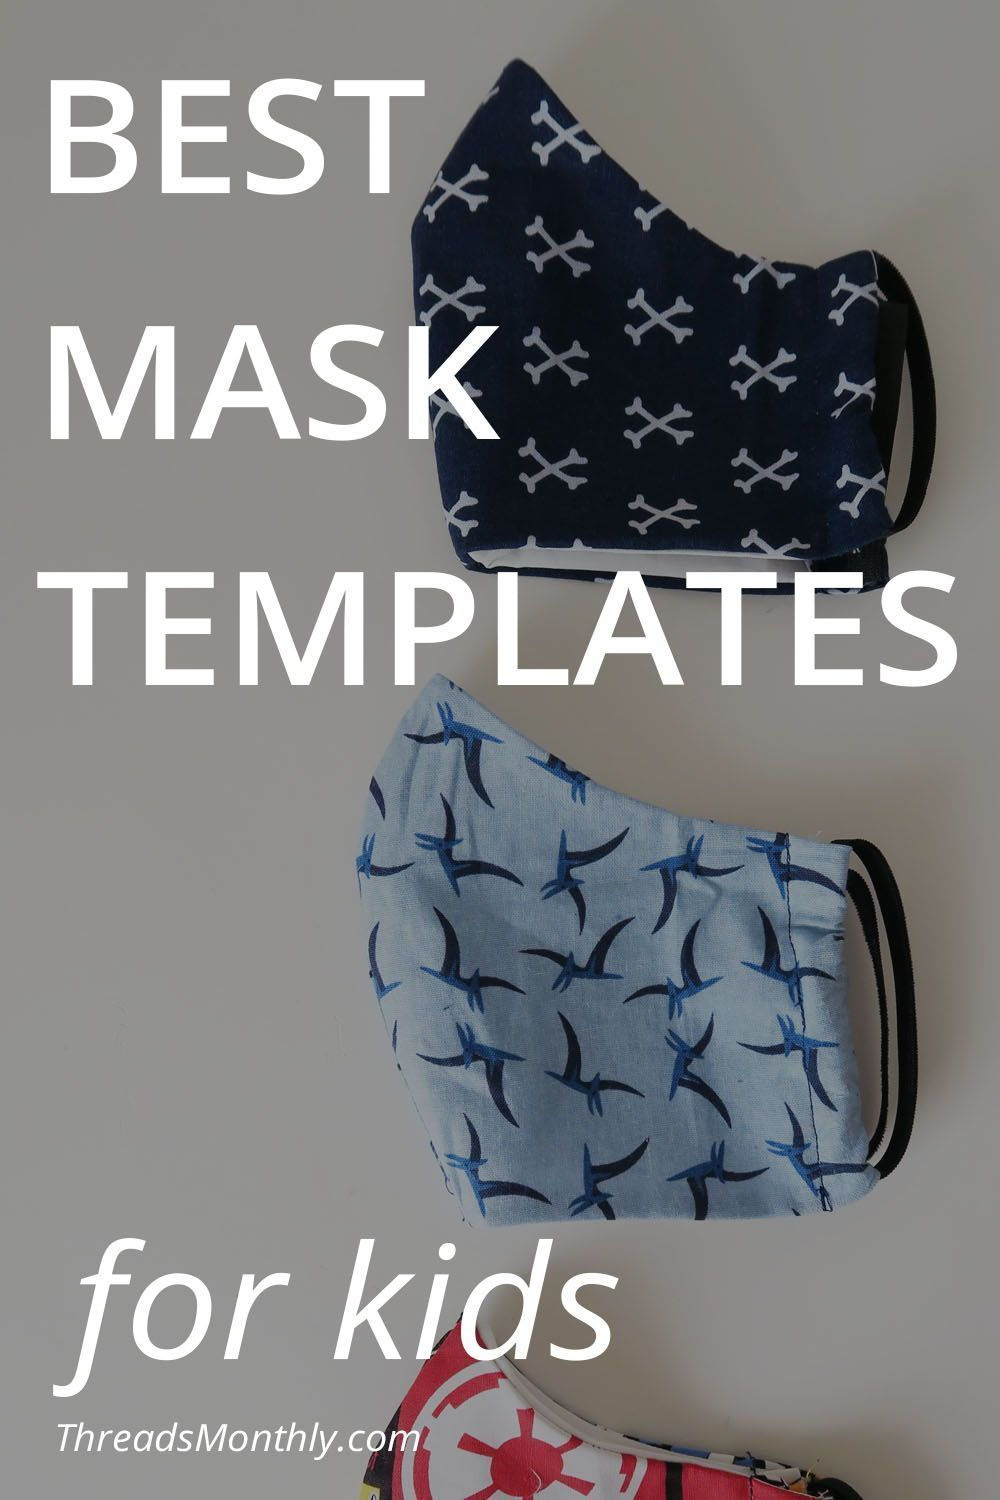 Best Face Mask Templates for Children | Free Printable Patterns & Measurements for Kids & Teens